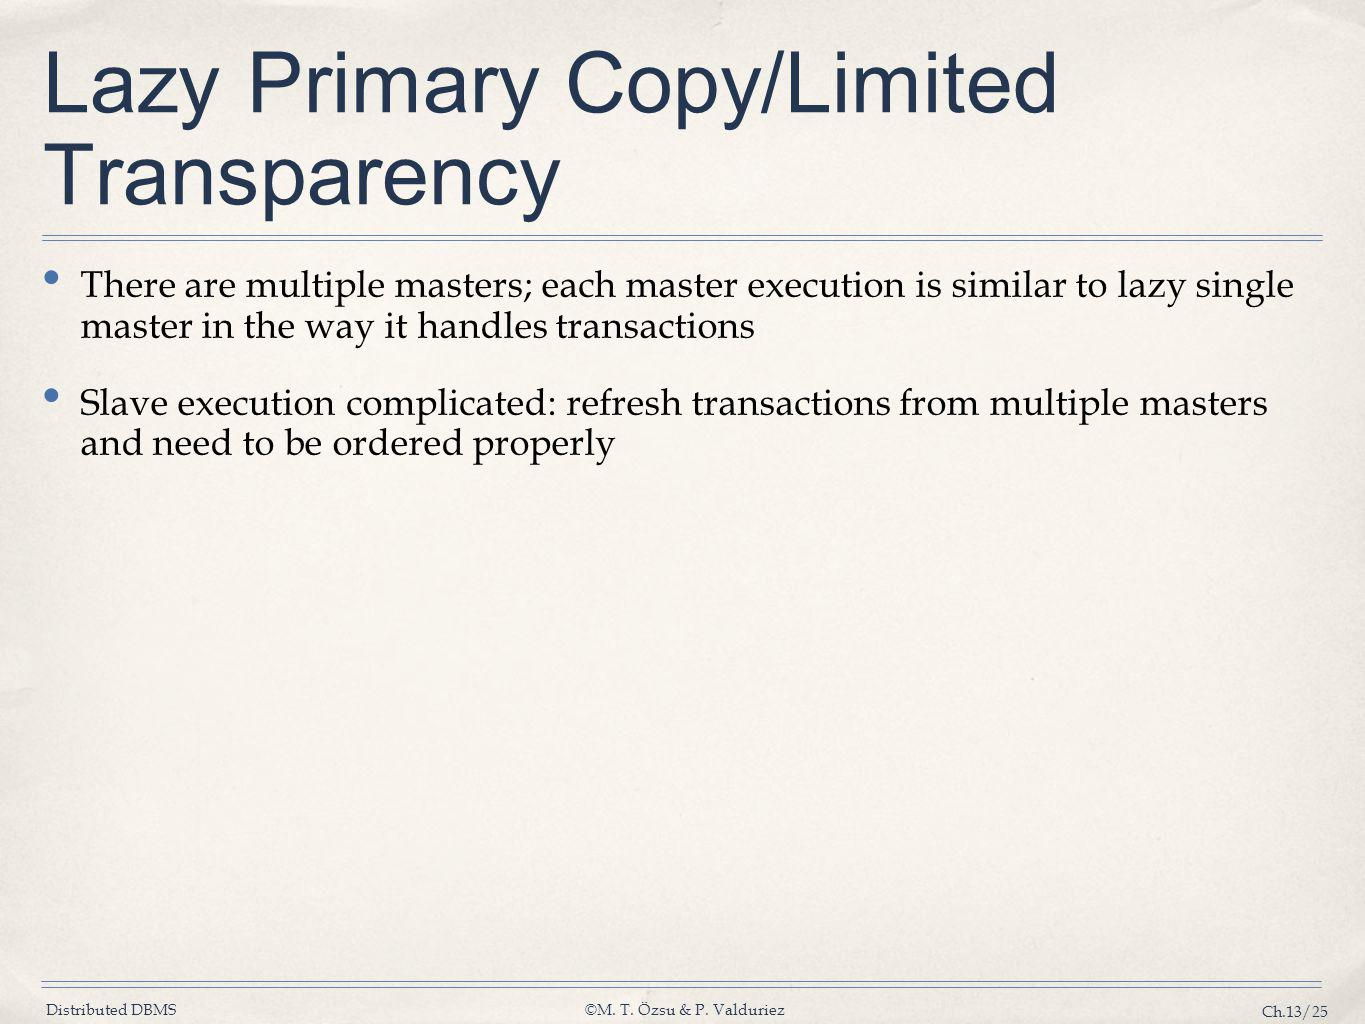 Lazy Primary Copy/Limited Transparency